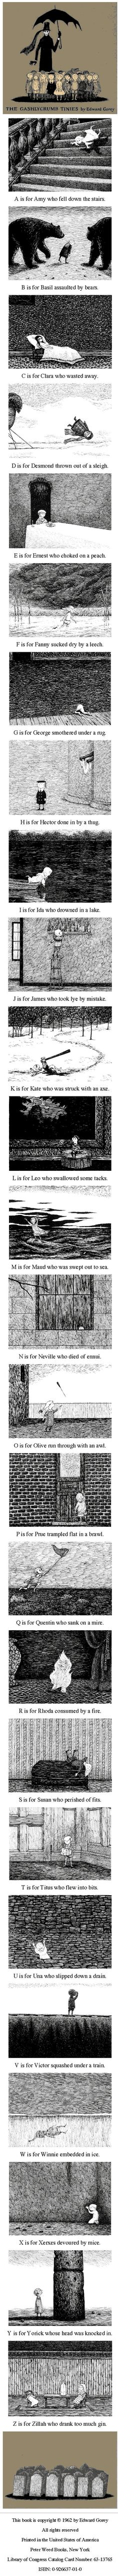 The Gashlycrumb Tinies | Edward Gorey